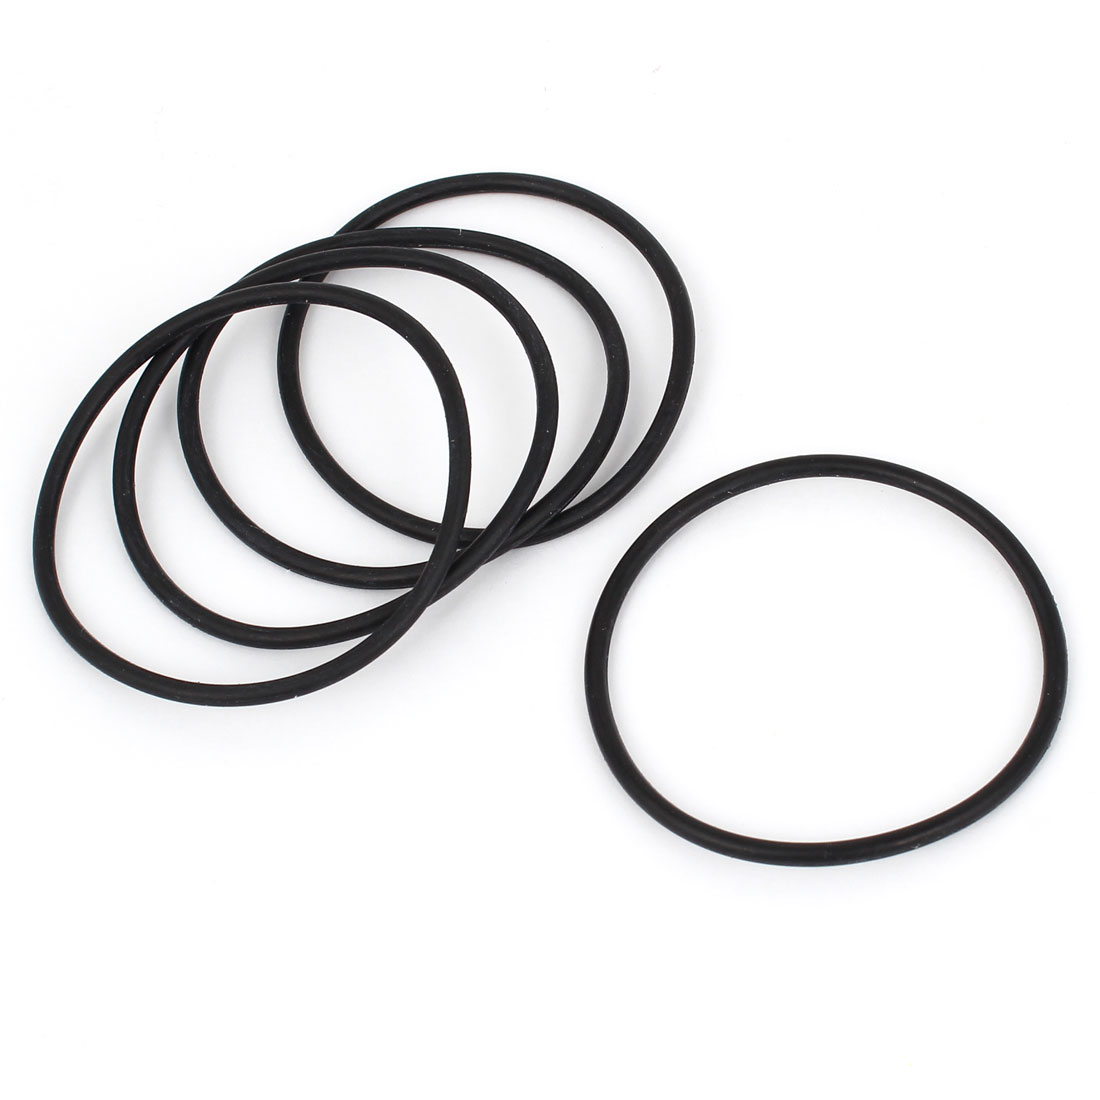 5pcs 50mm Outside Dia Rubber Washers O Ring Oil Seal Gaskets Black